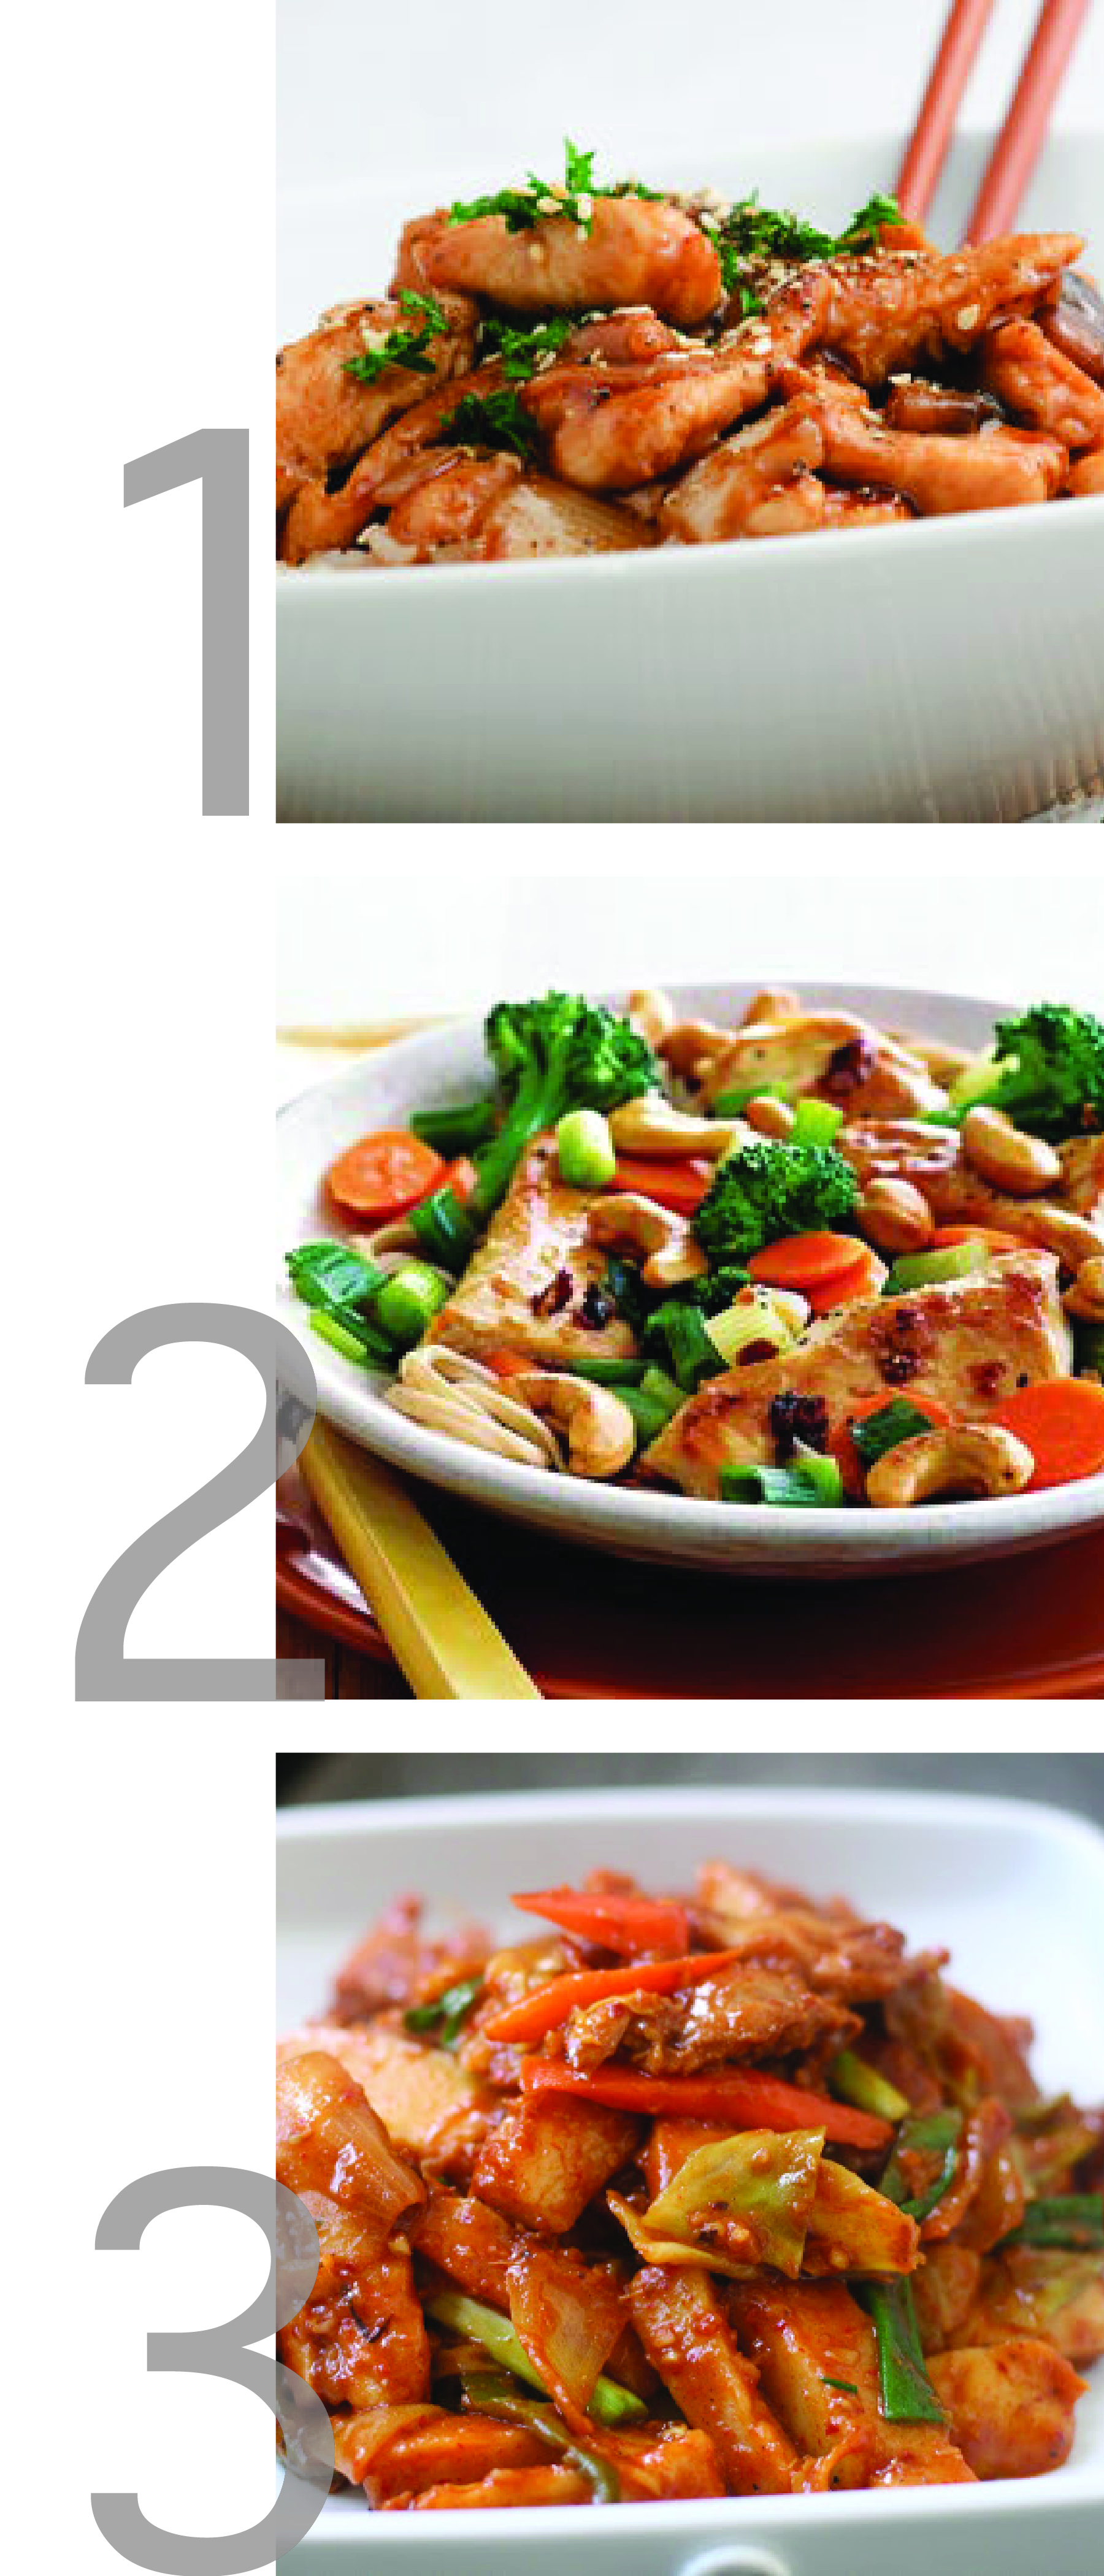 Weekly Pinspiration: Chicken Stir Fry